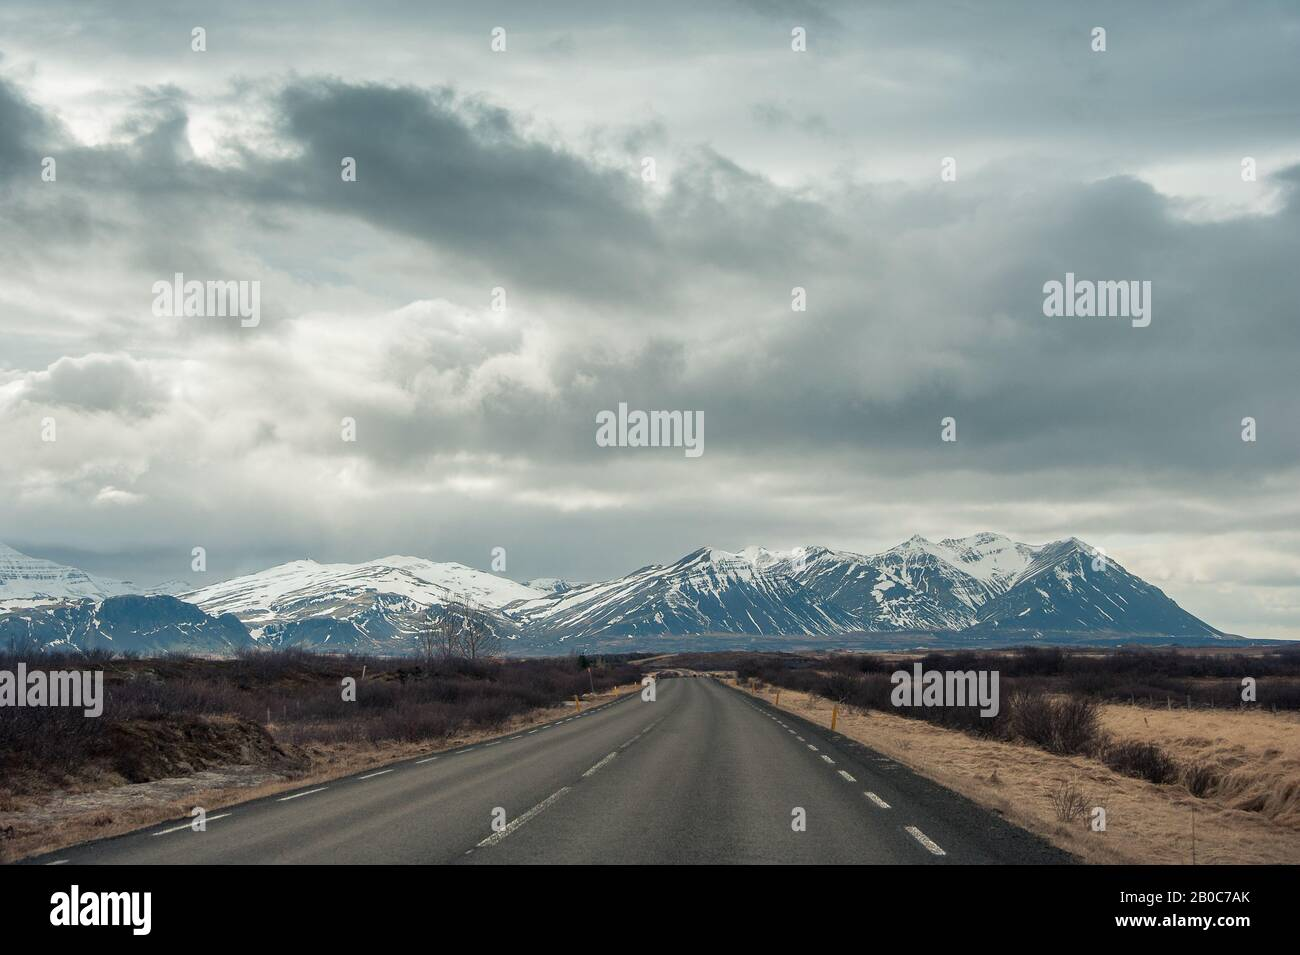 Empty road leads toward a snow capped mountain with moody, cloud sky. Stock Photo